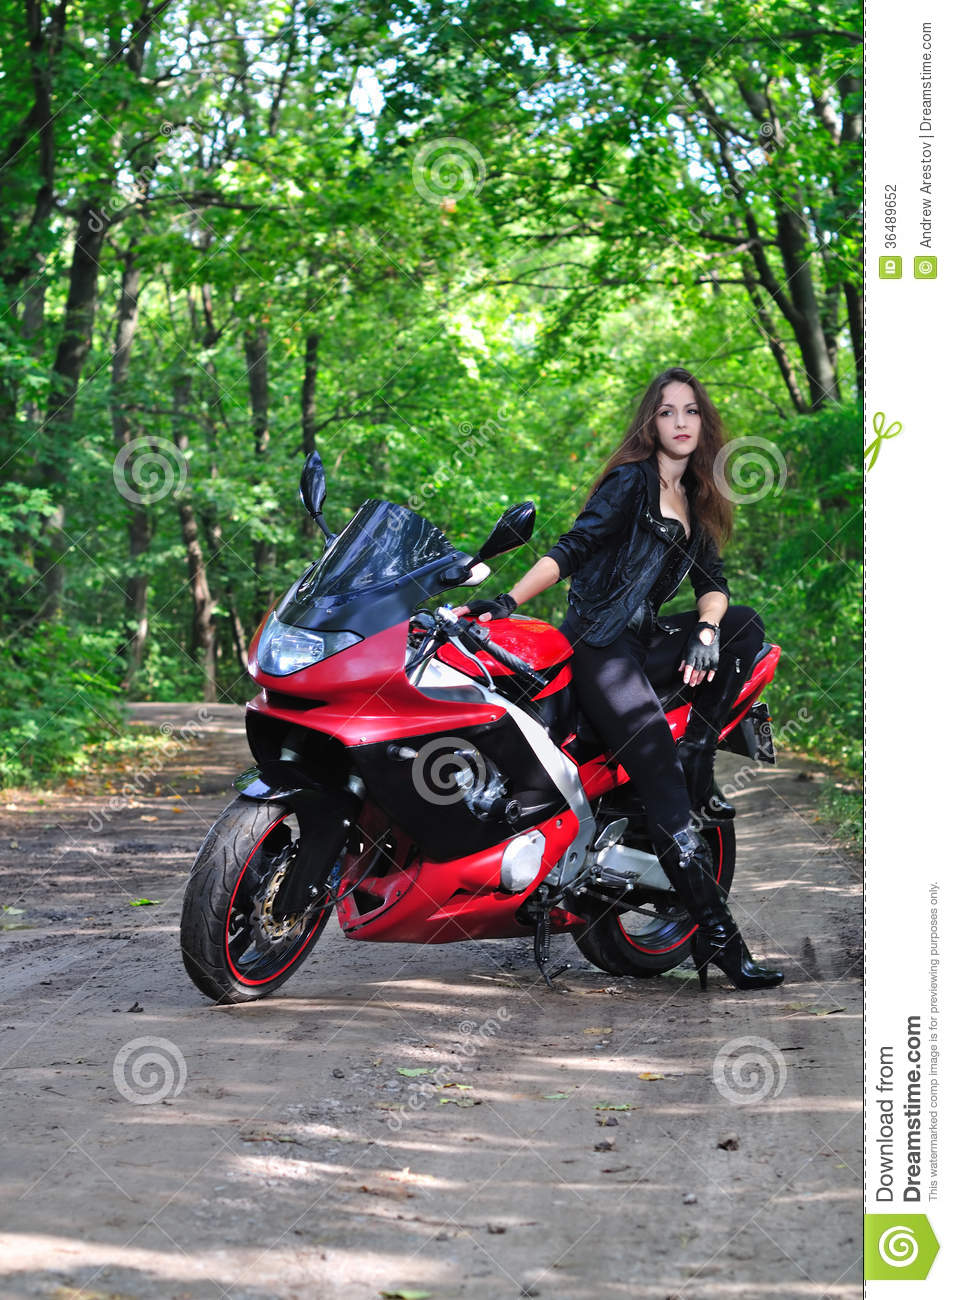 Biker Girl Wallpaper Free Download The Girl Near A Sports Bike In The Woods Stock Photo